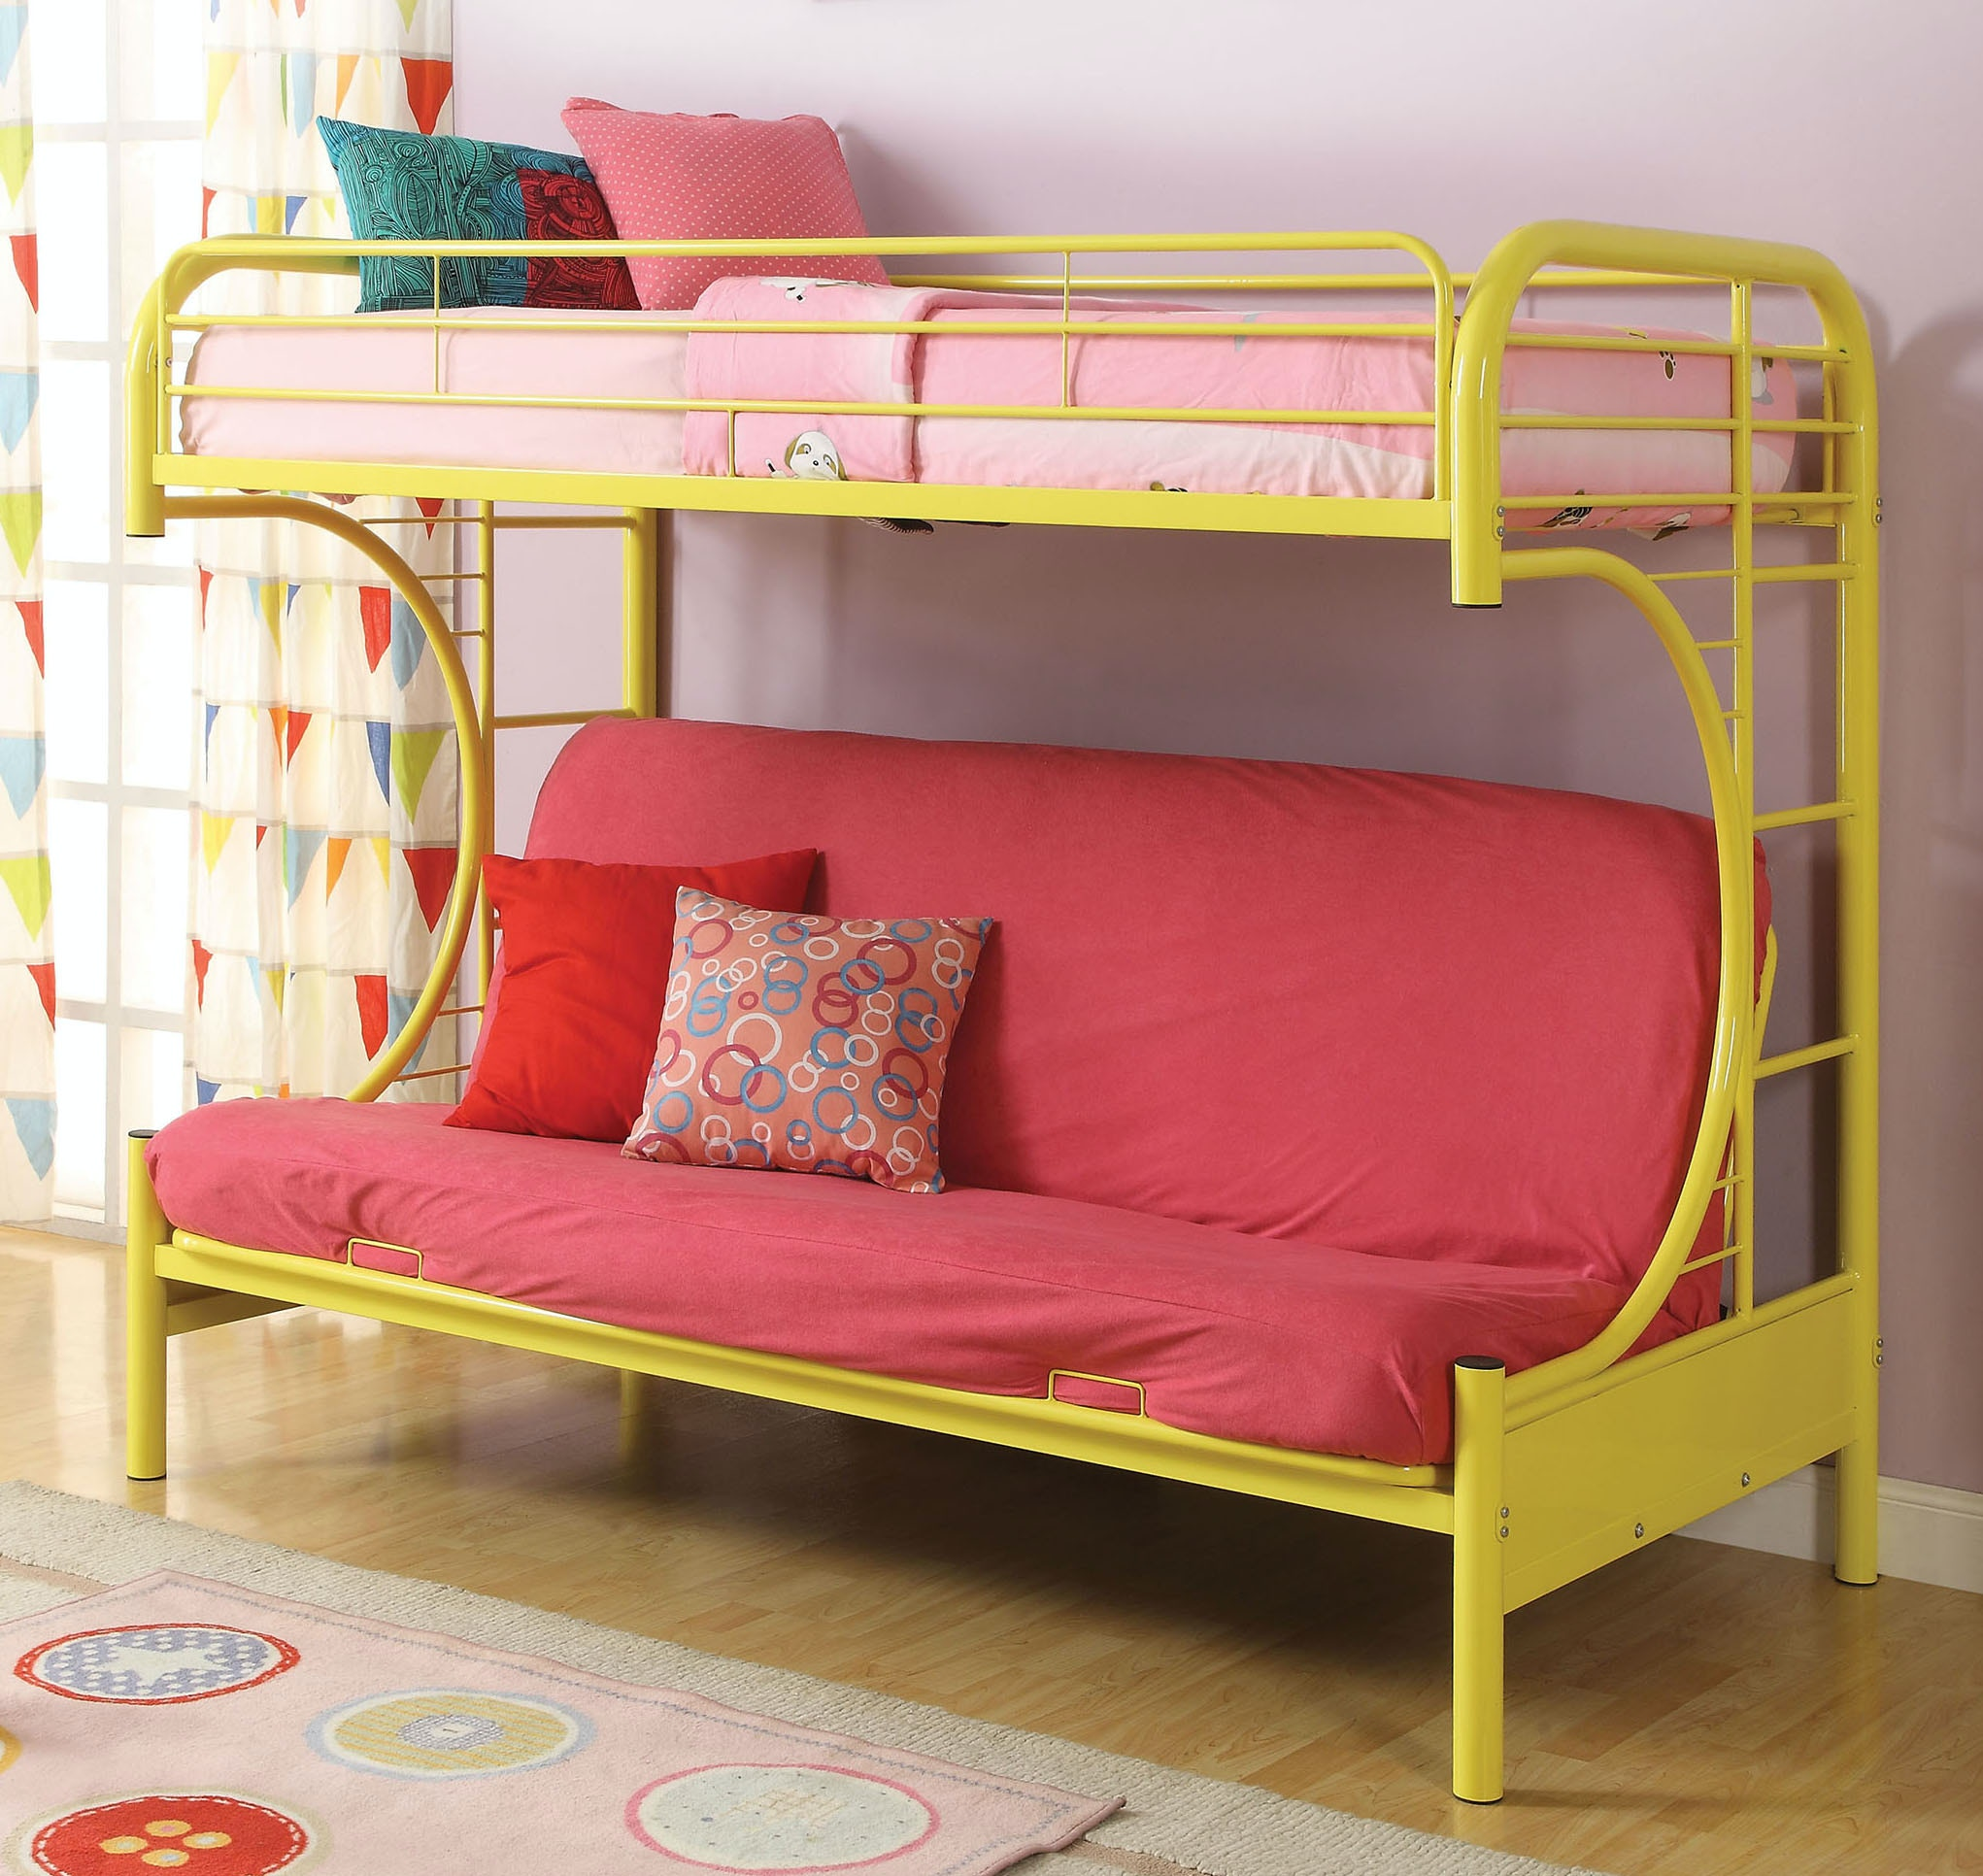 Acme Furniture Twin Over Full/Futon Bunk Bed 02091W YL